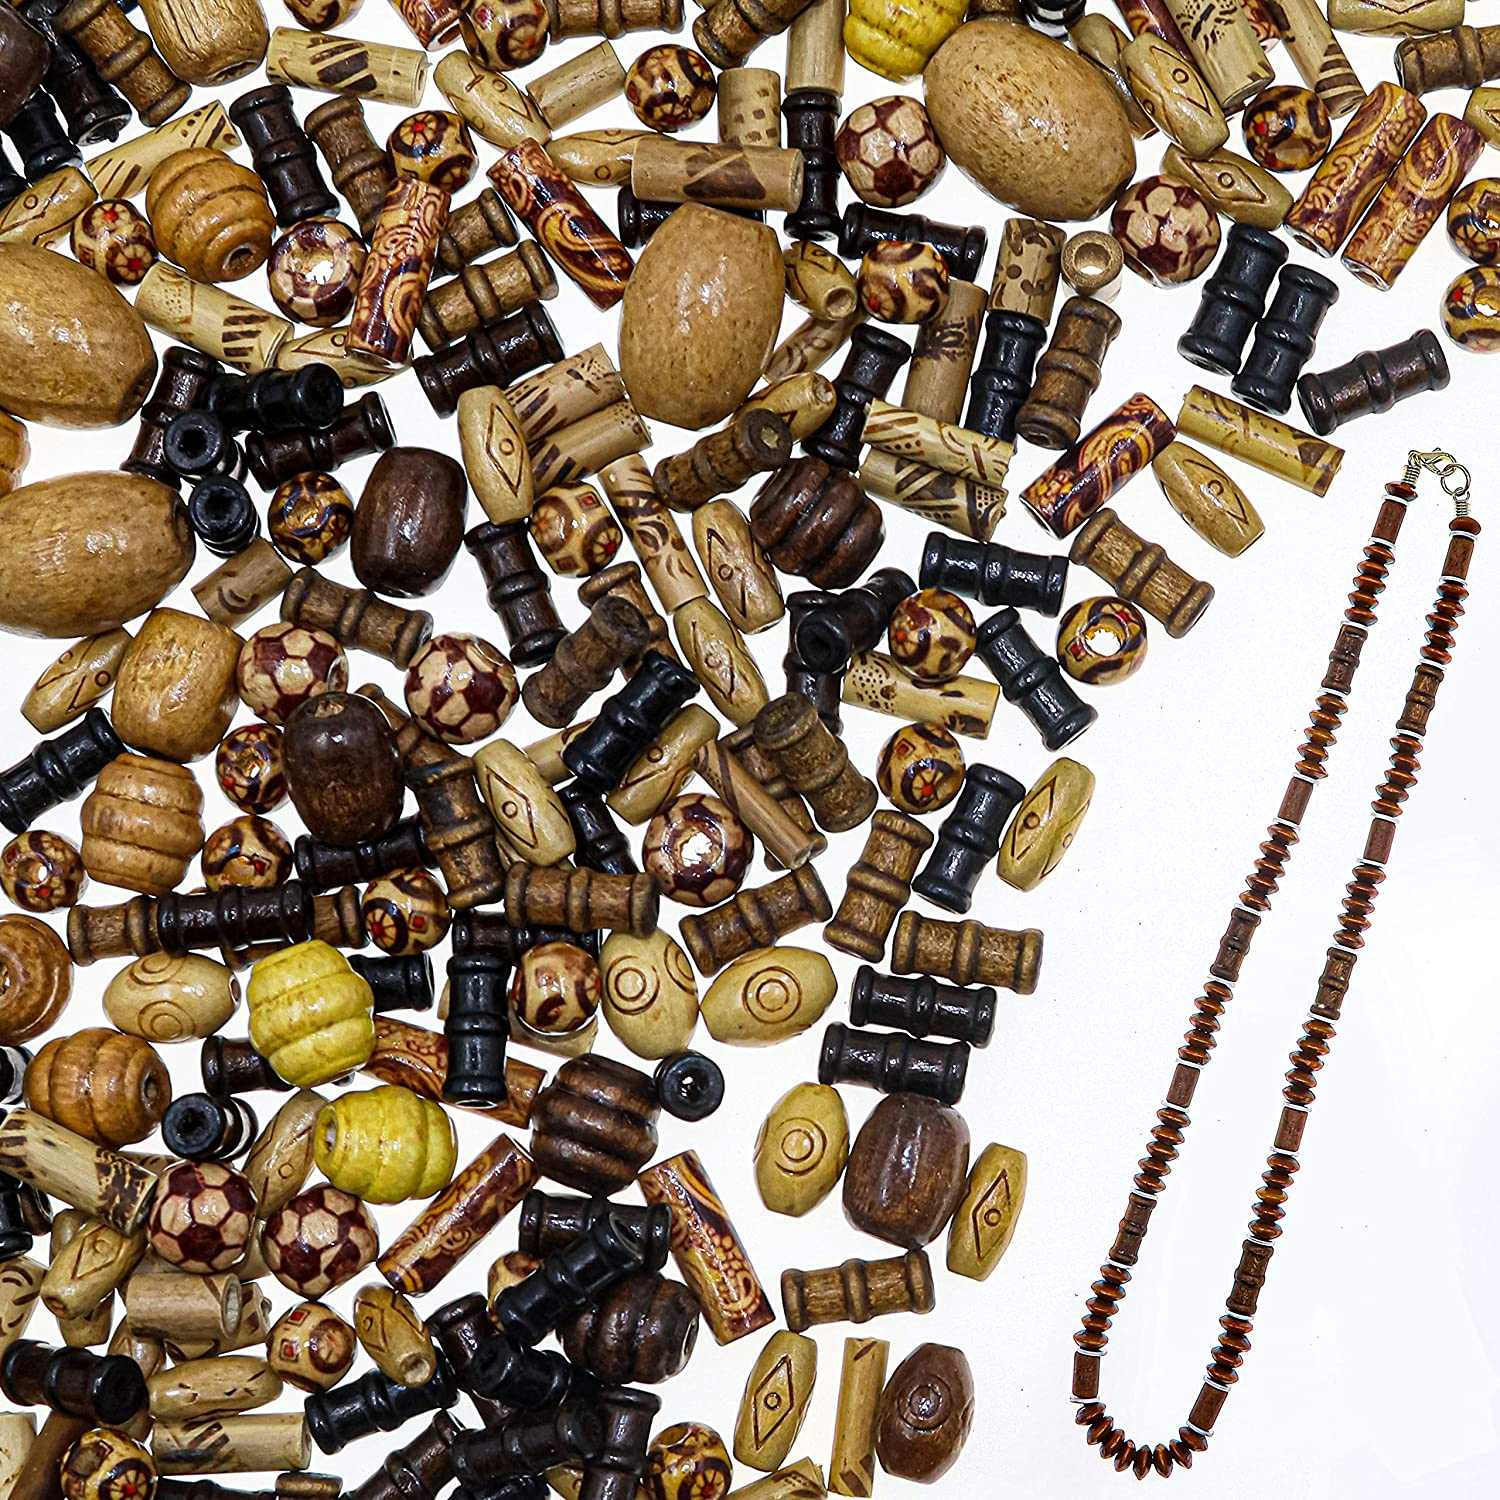 Over 700 Pieces Wood Beads for Jewelry Making with Free Sample Necklace - 24 Assorted Natural Wooden Bead Styles - Great for African, Native American Designs, Macrame Bracelets, Necklaces, Braids